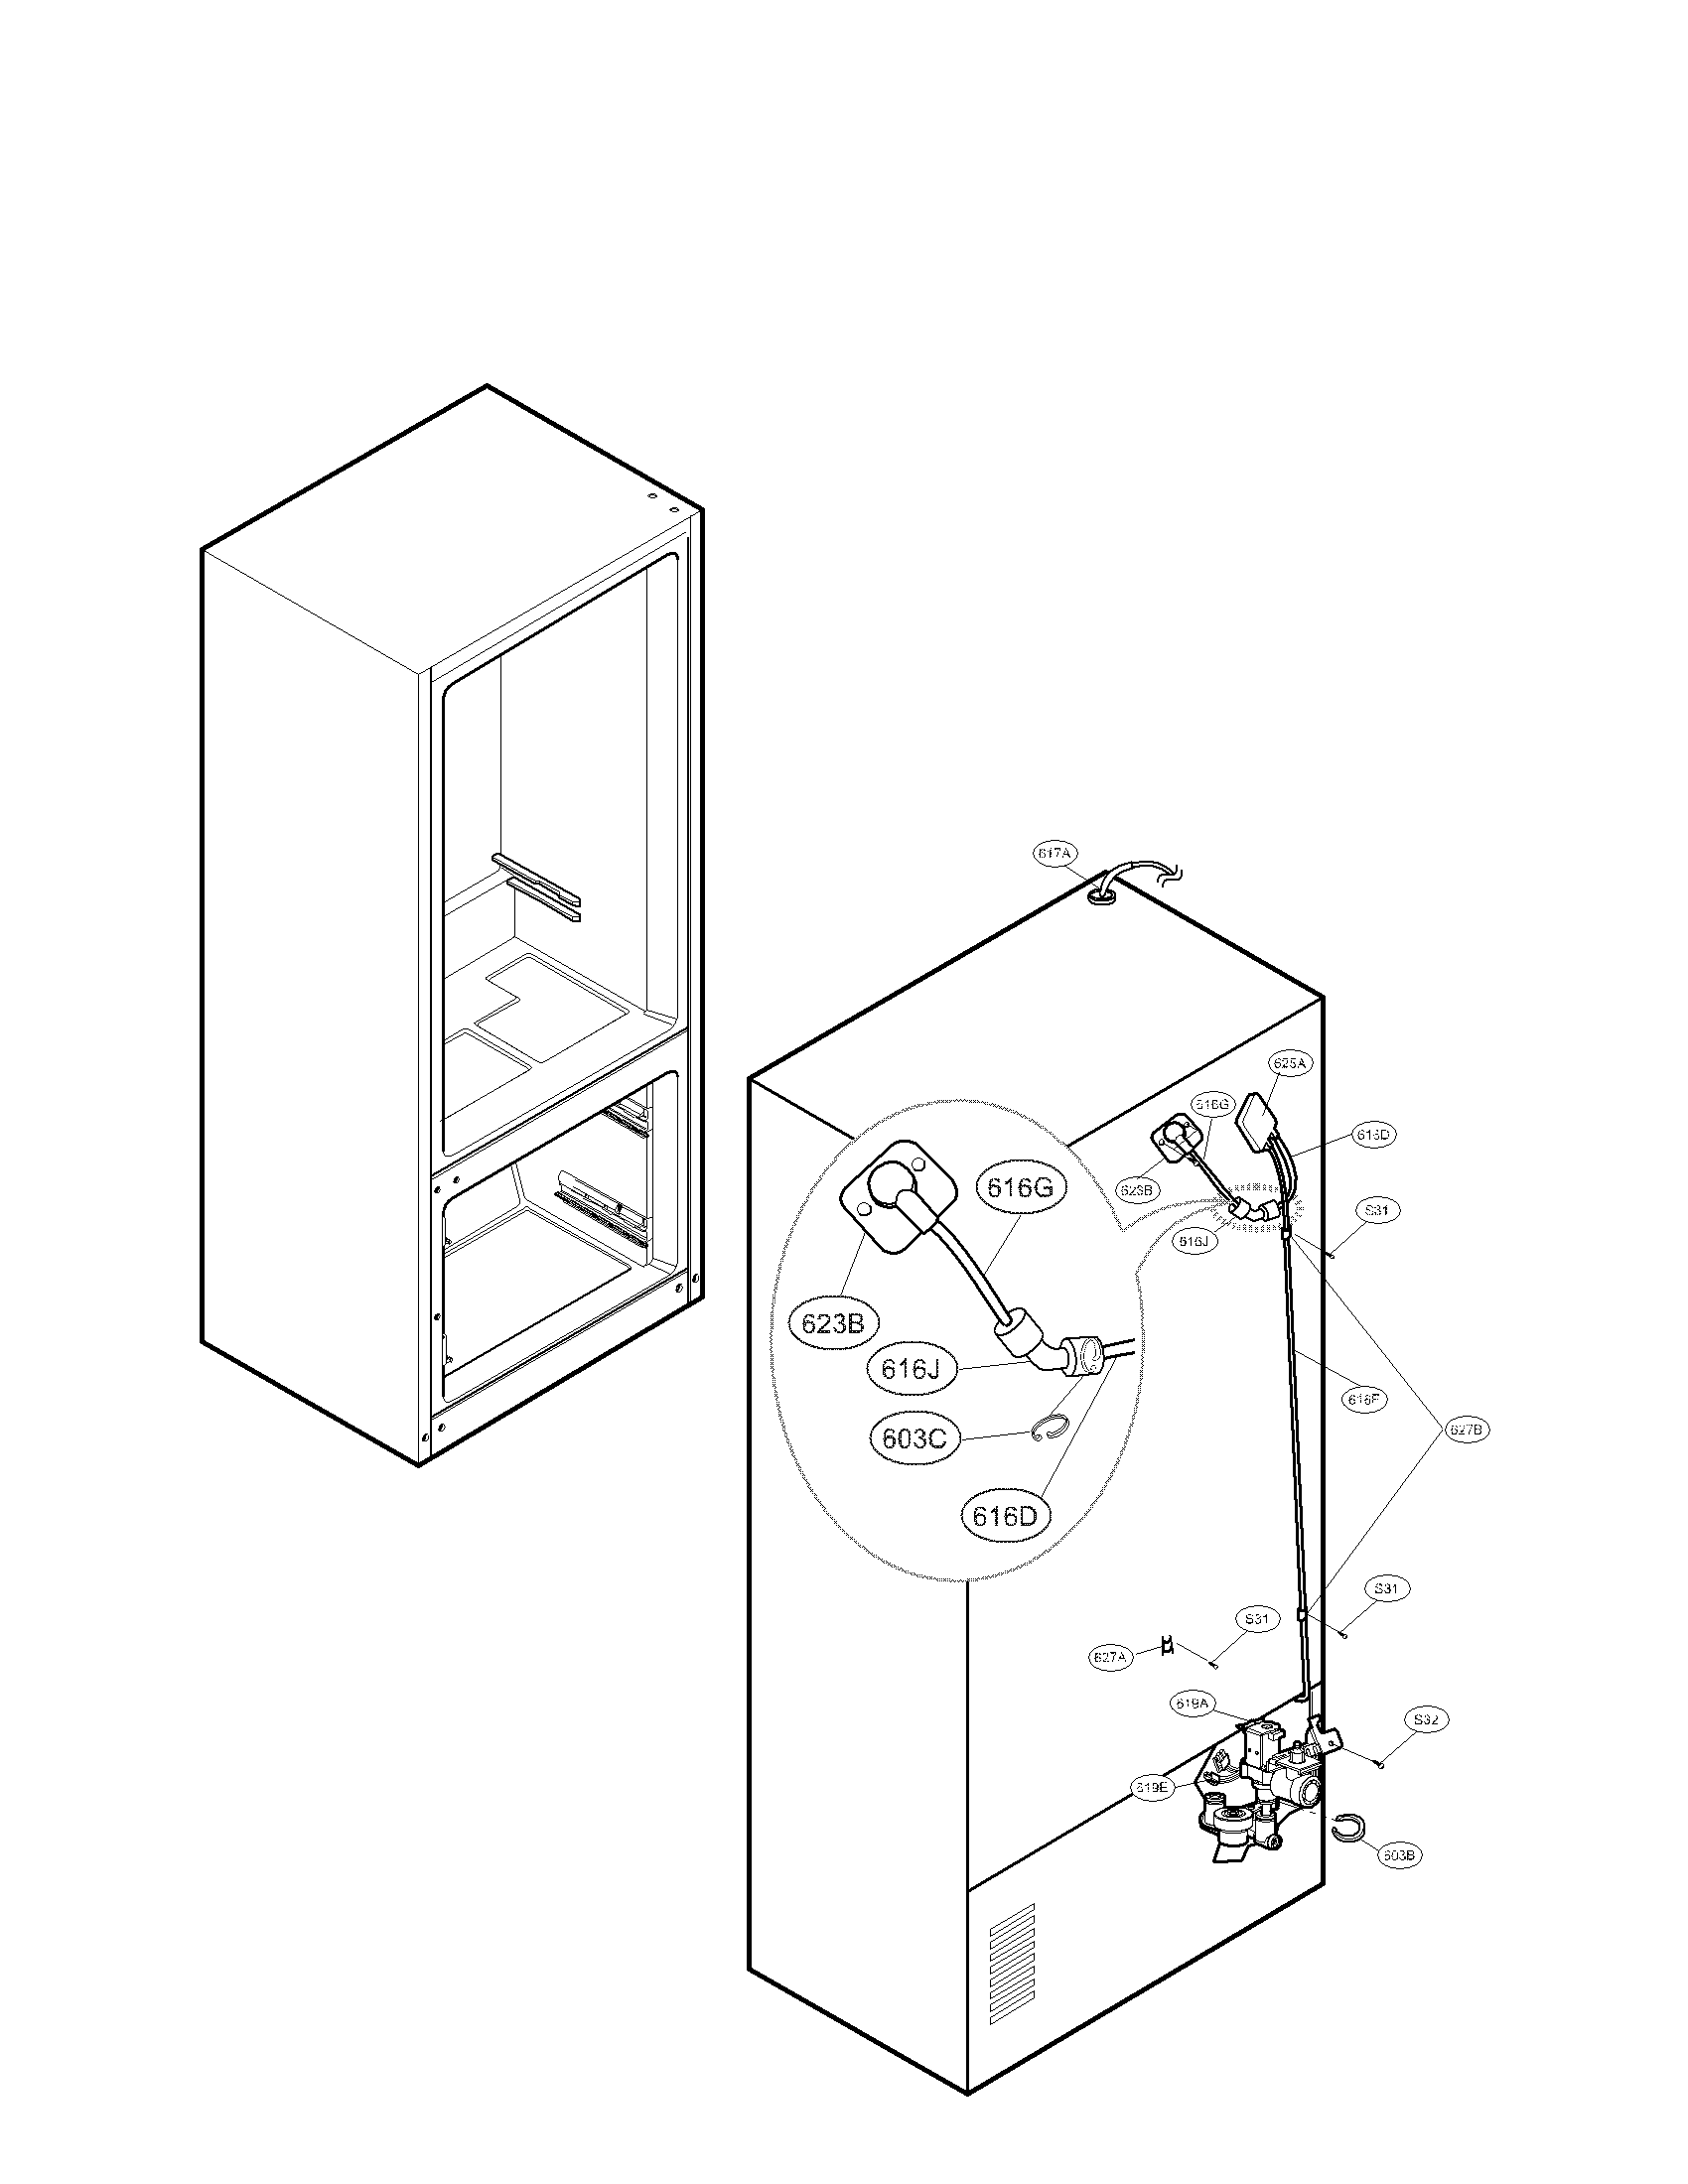 LG LMX25988SW/00 valve and water tube parts diagram